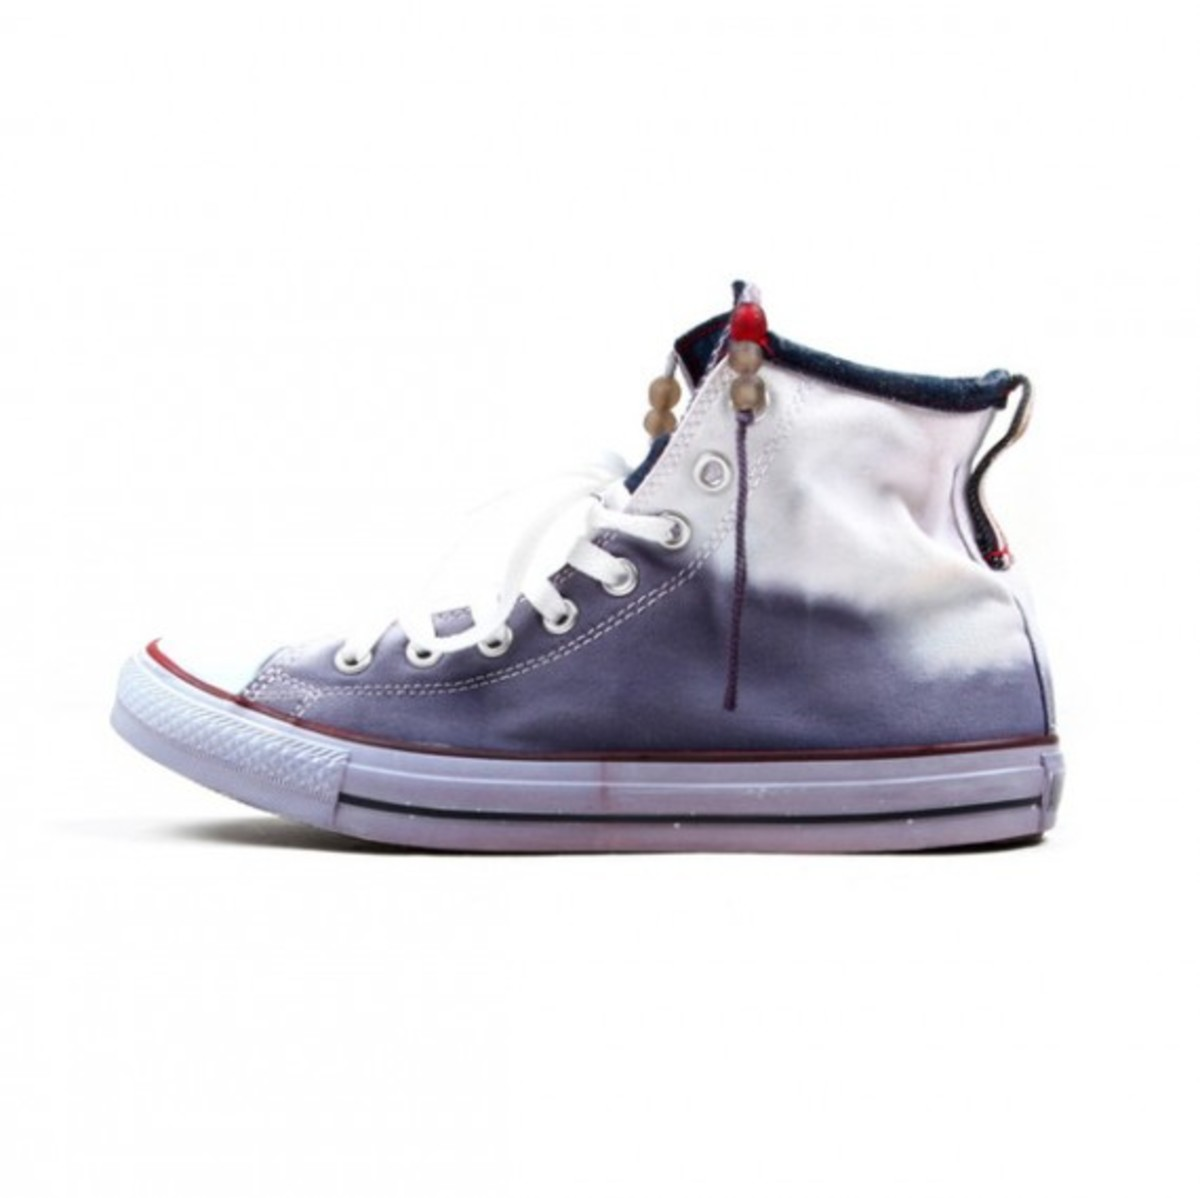 us-alteration-union-custom-made-converse-ct-sneakers-08